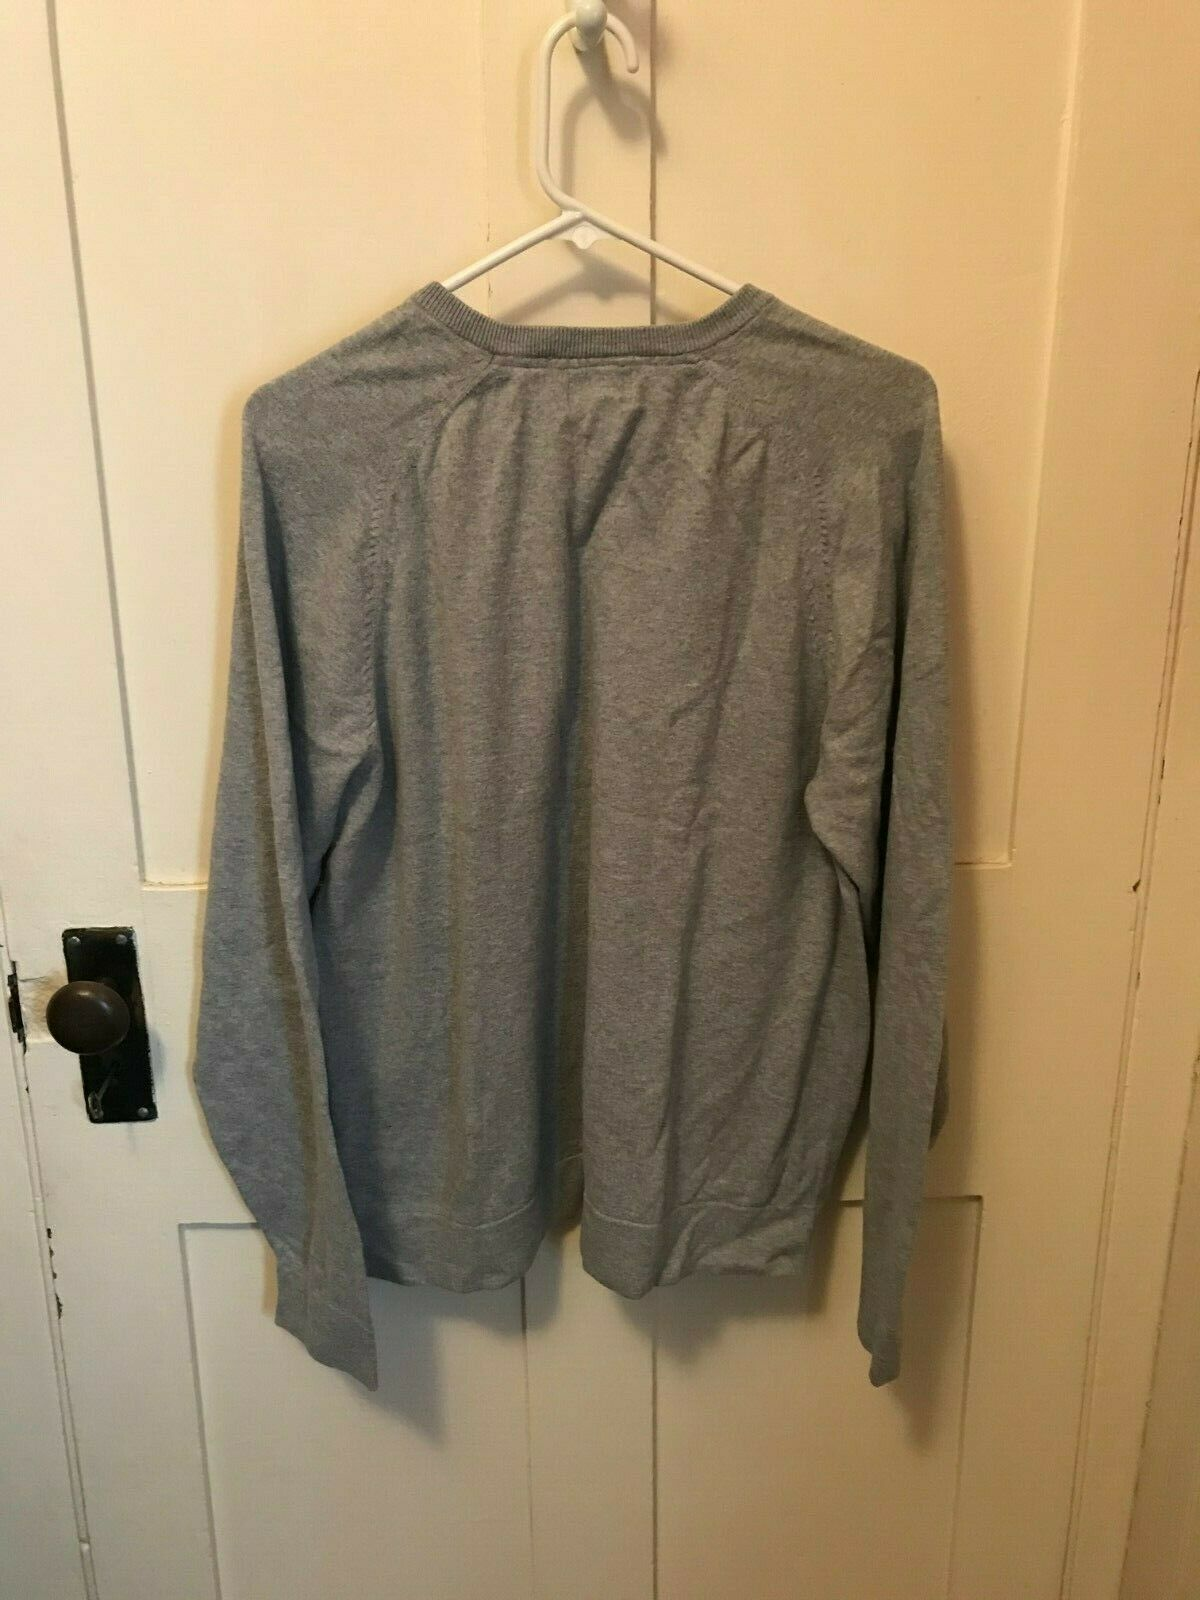 LL BEAN V NECK SWEATER GRAY SIZE LARGE - image 2